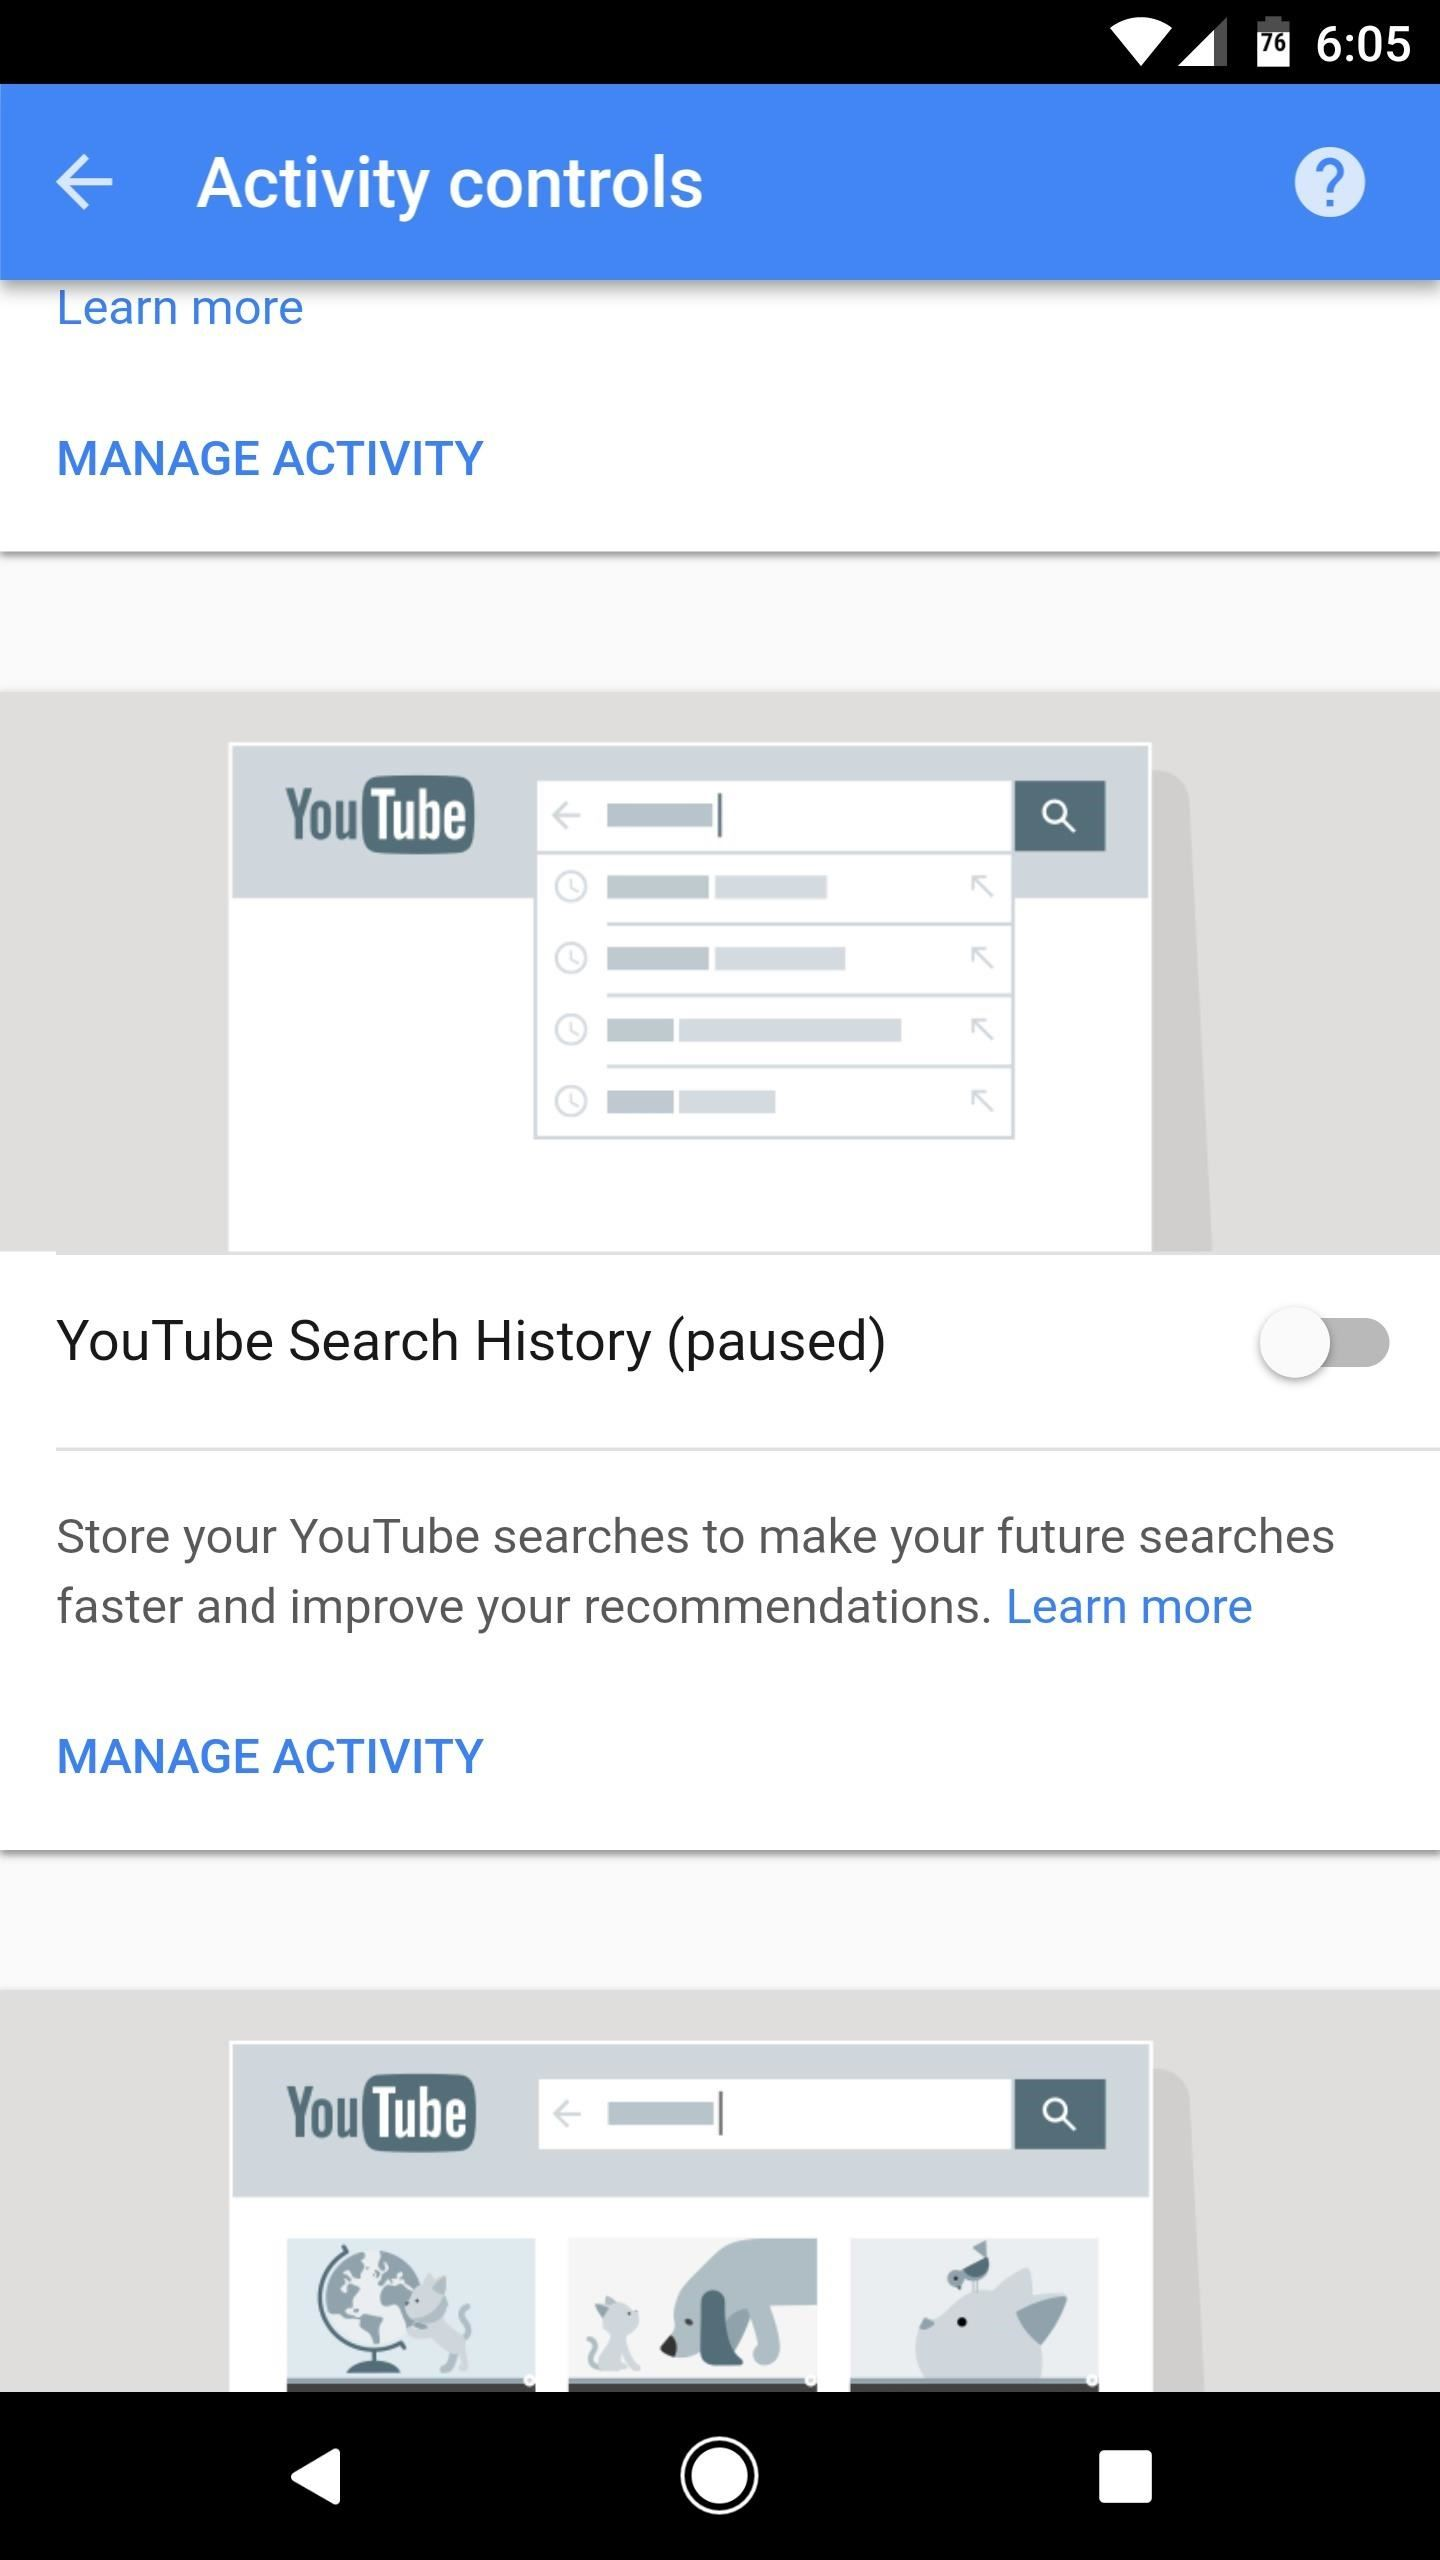 From Here, You Can Delete Individual Search History Items By Tapping The  Menu Button Next To Them And Choosing